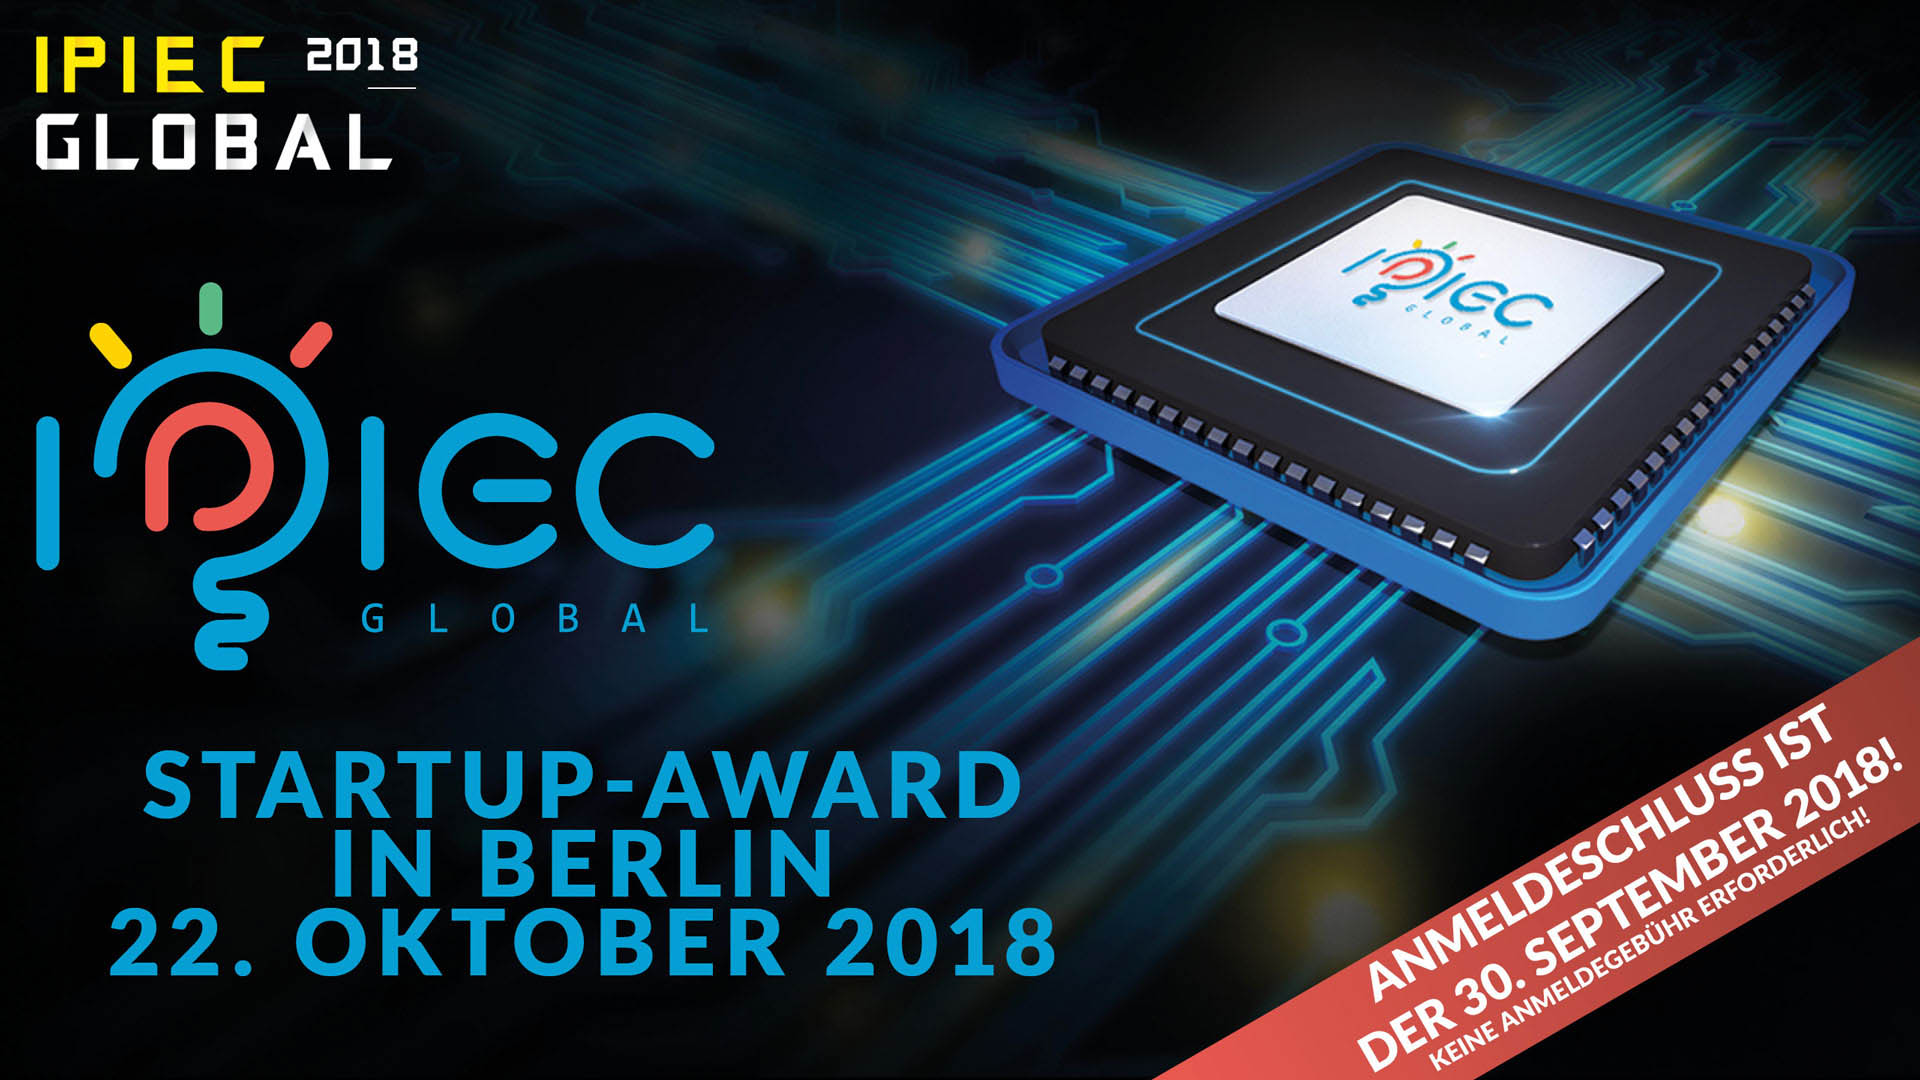 Kapital & Investoren – Start-ups pitchen in Berlin | Wettbewerb IPIEC Global 2018 – Anmeldeschluss 30. September